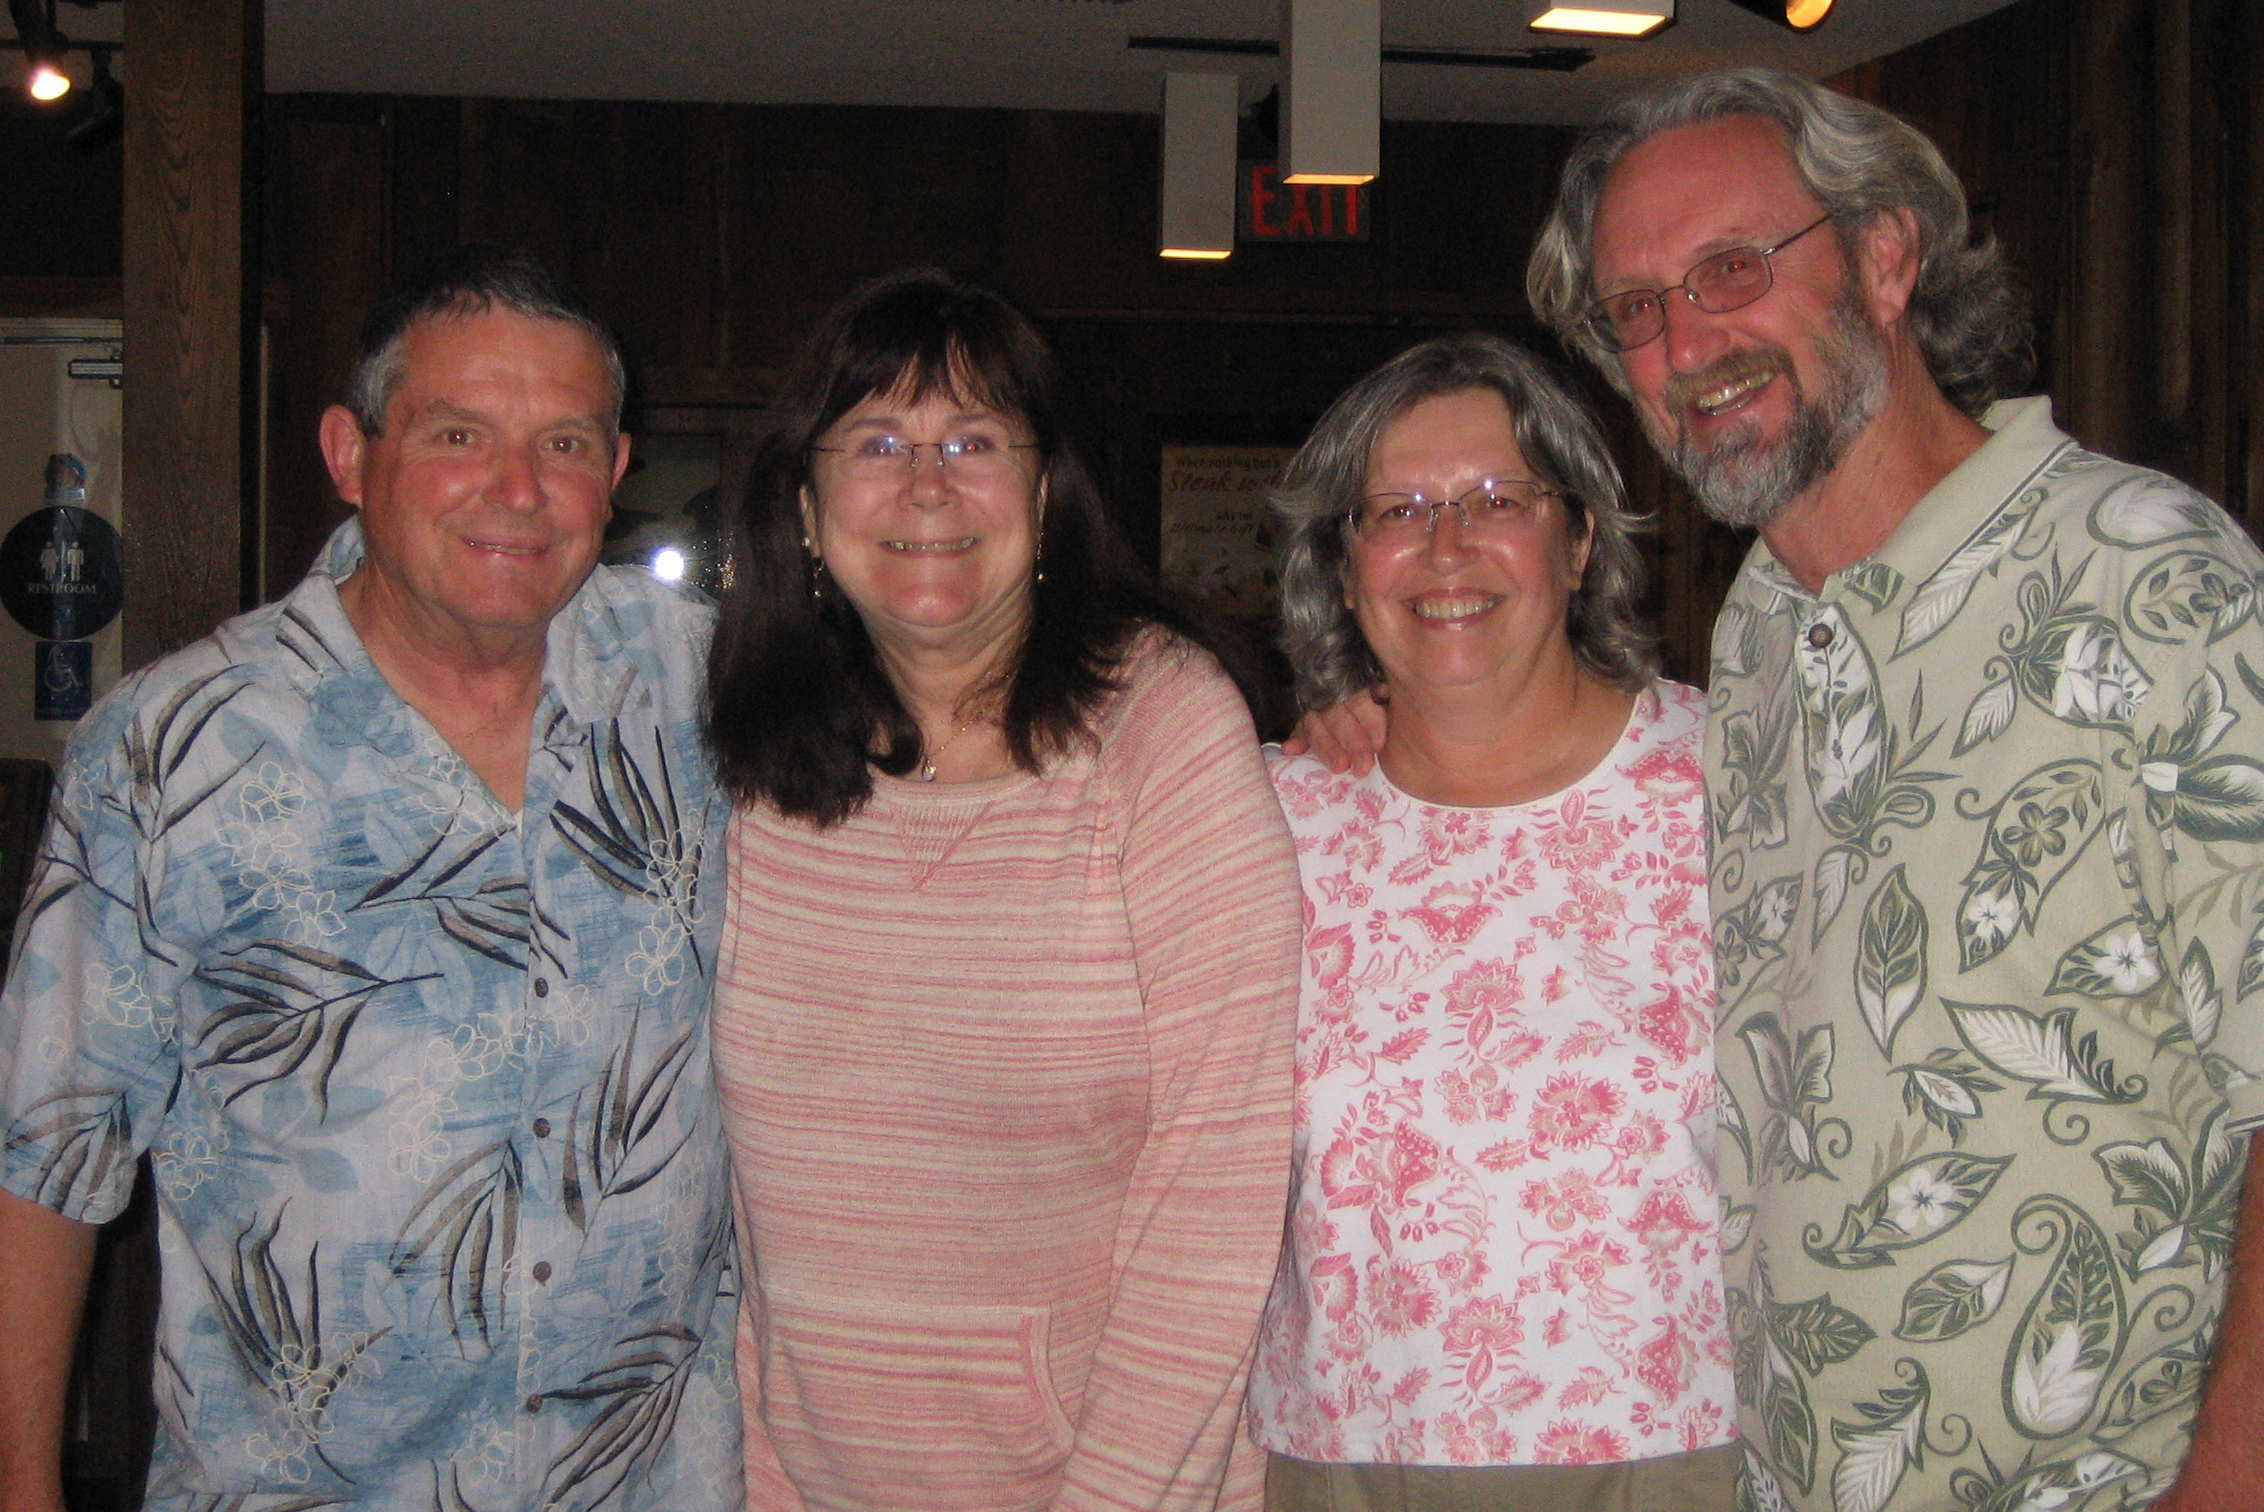 Left to Right:  Rob, Susan, Kathy, Bill